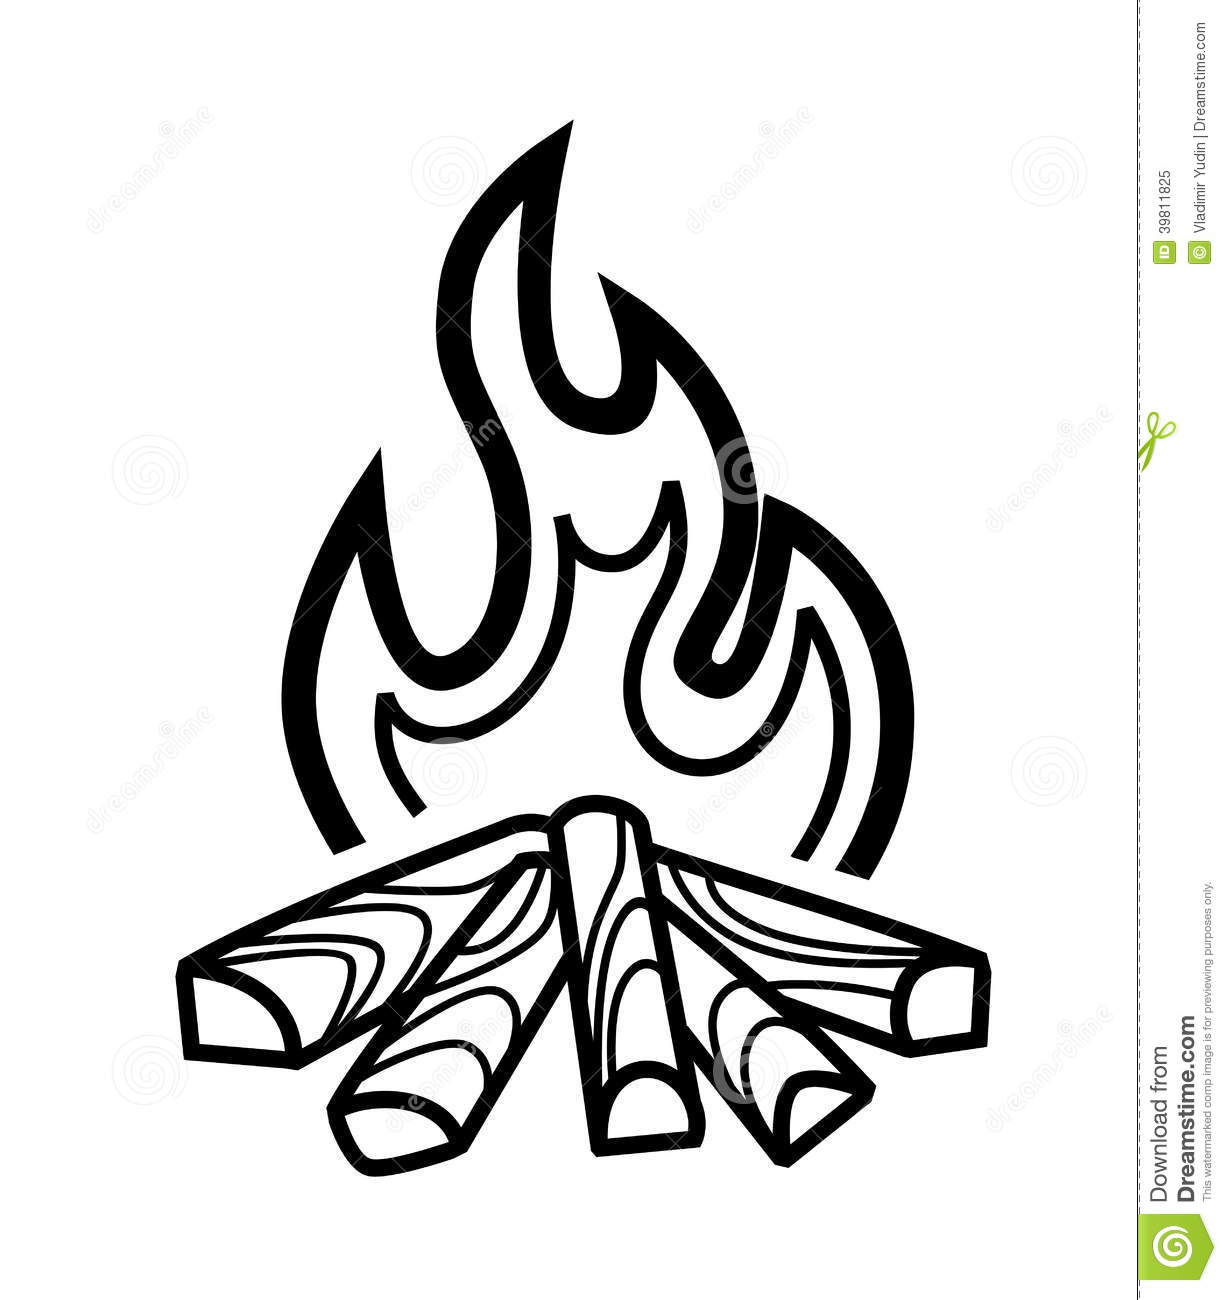 Campfire clipart black and white image free Campfire clipart black and white 6 » Clipart Station image free